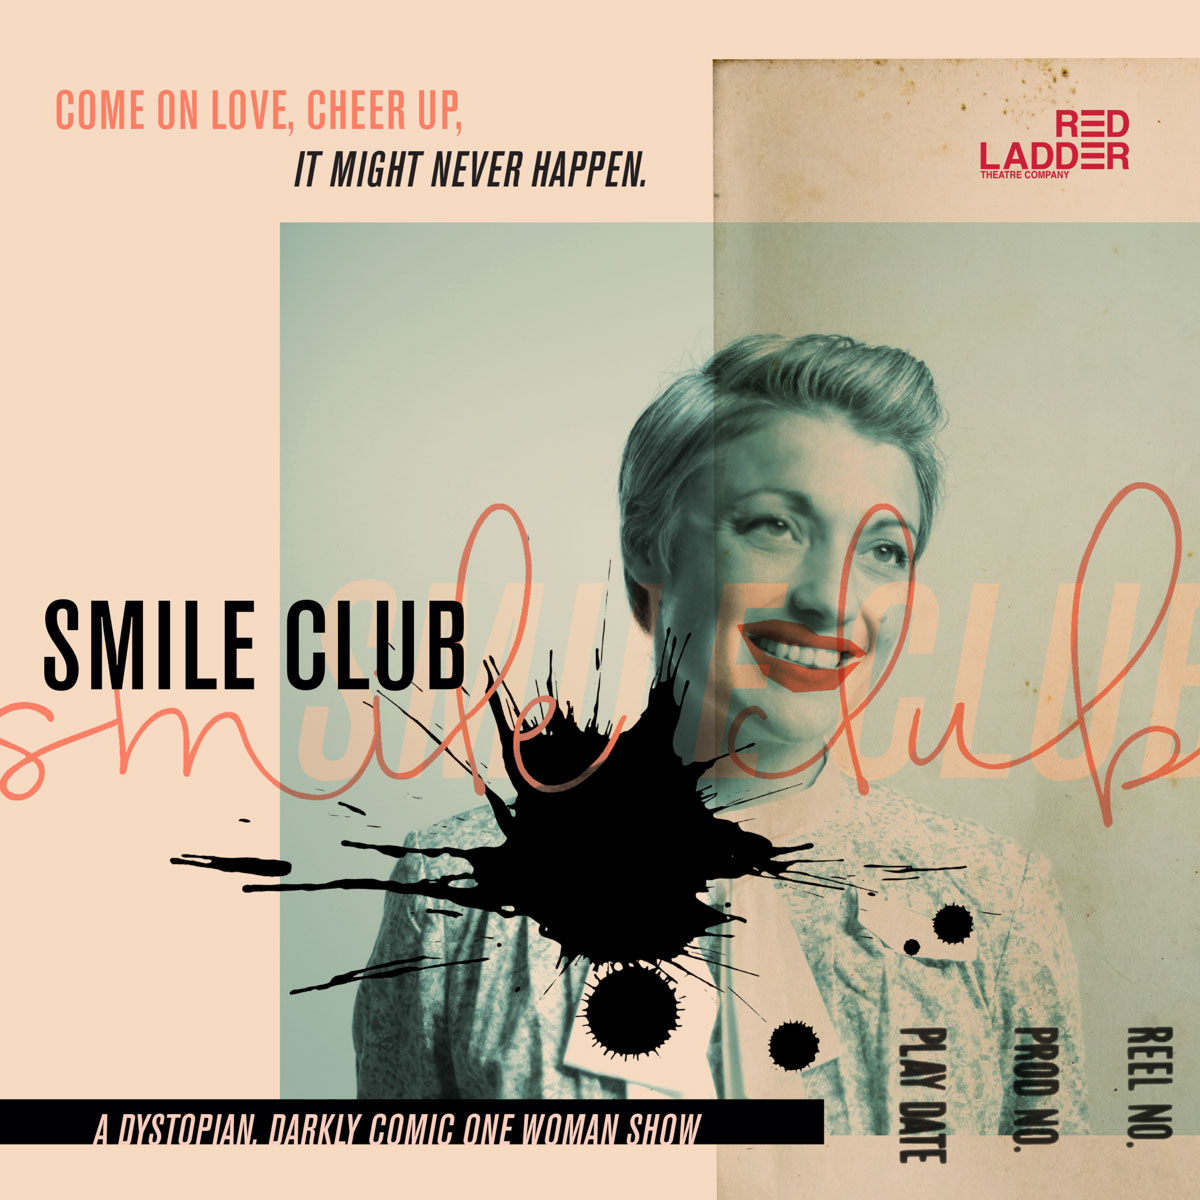 TURN THAT FROWN UPSIDE DOWN – OR ELSE – AS 'SMILE CLUB' COMES TO TOWN!